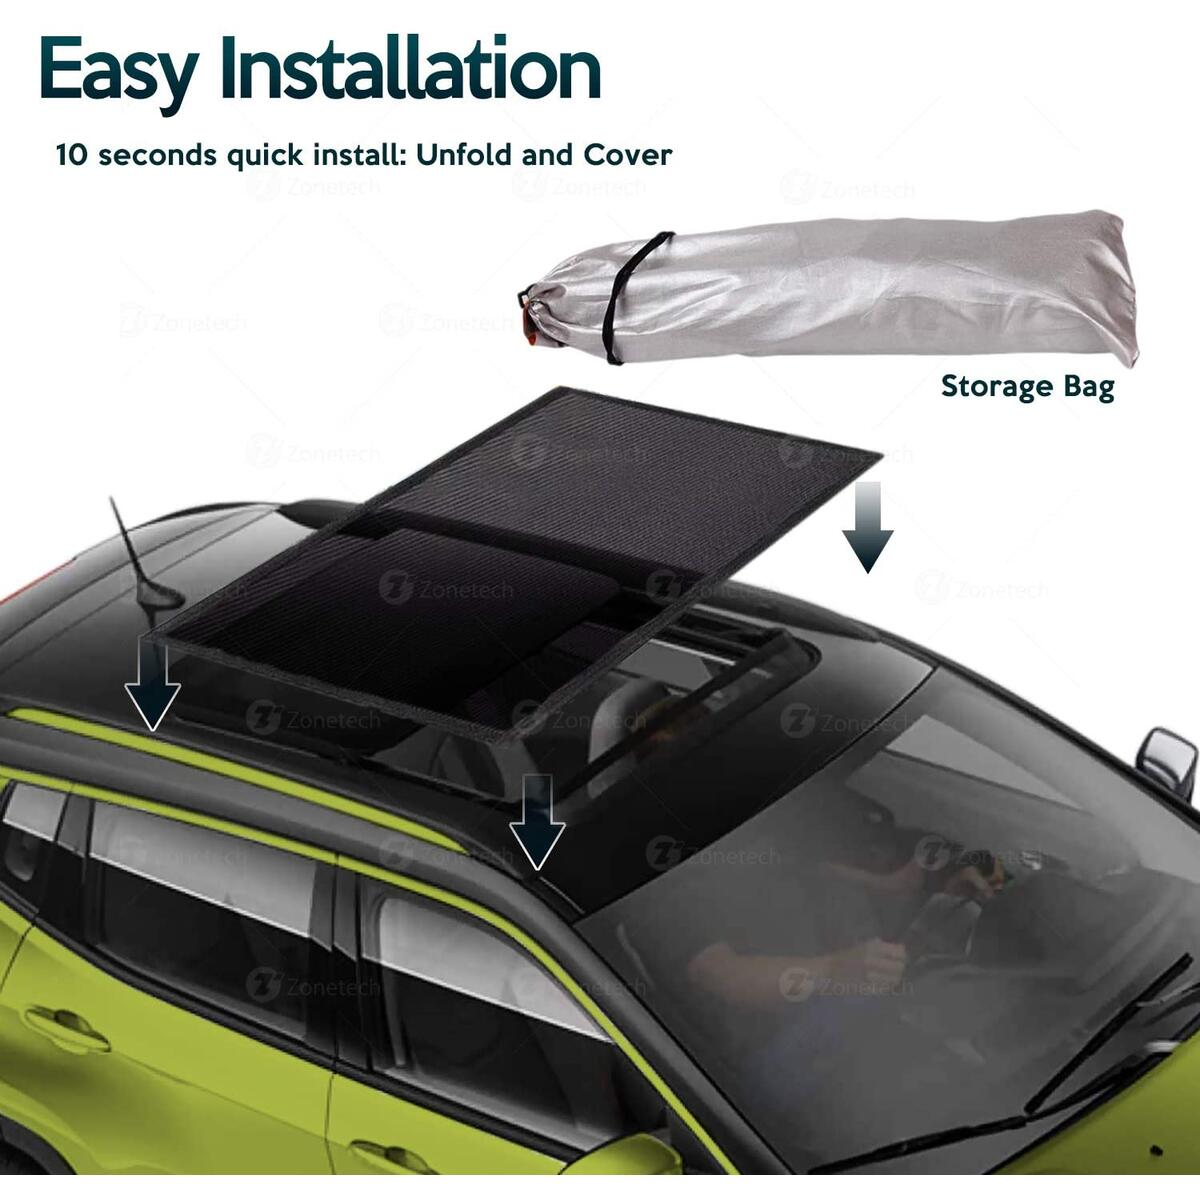 Zone Tech Car Mesh Sun Roof Magnetic Sun Shade - Premium Quality, Foldable, Cool Sun and Mosquito Blocking Breathable Mesh Sun Shade Blocks UV Sun by Parking Trips Great Protection, Easy Installation